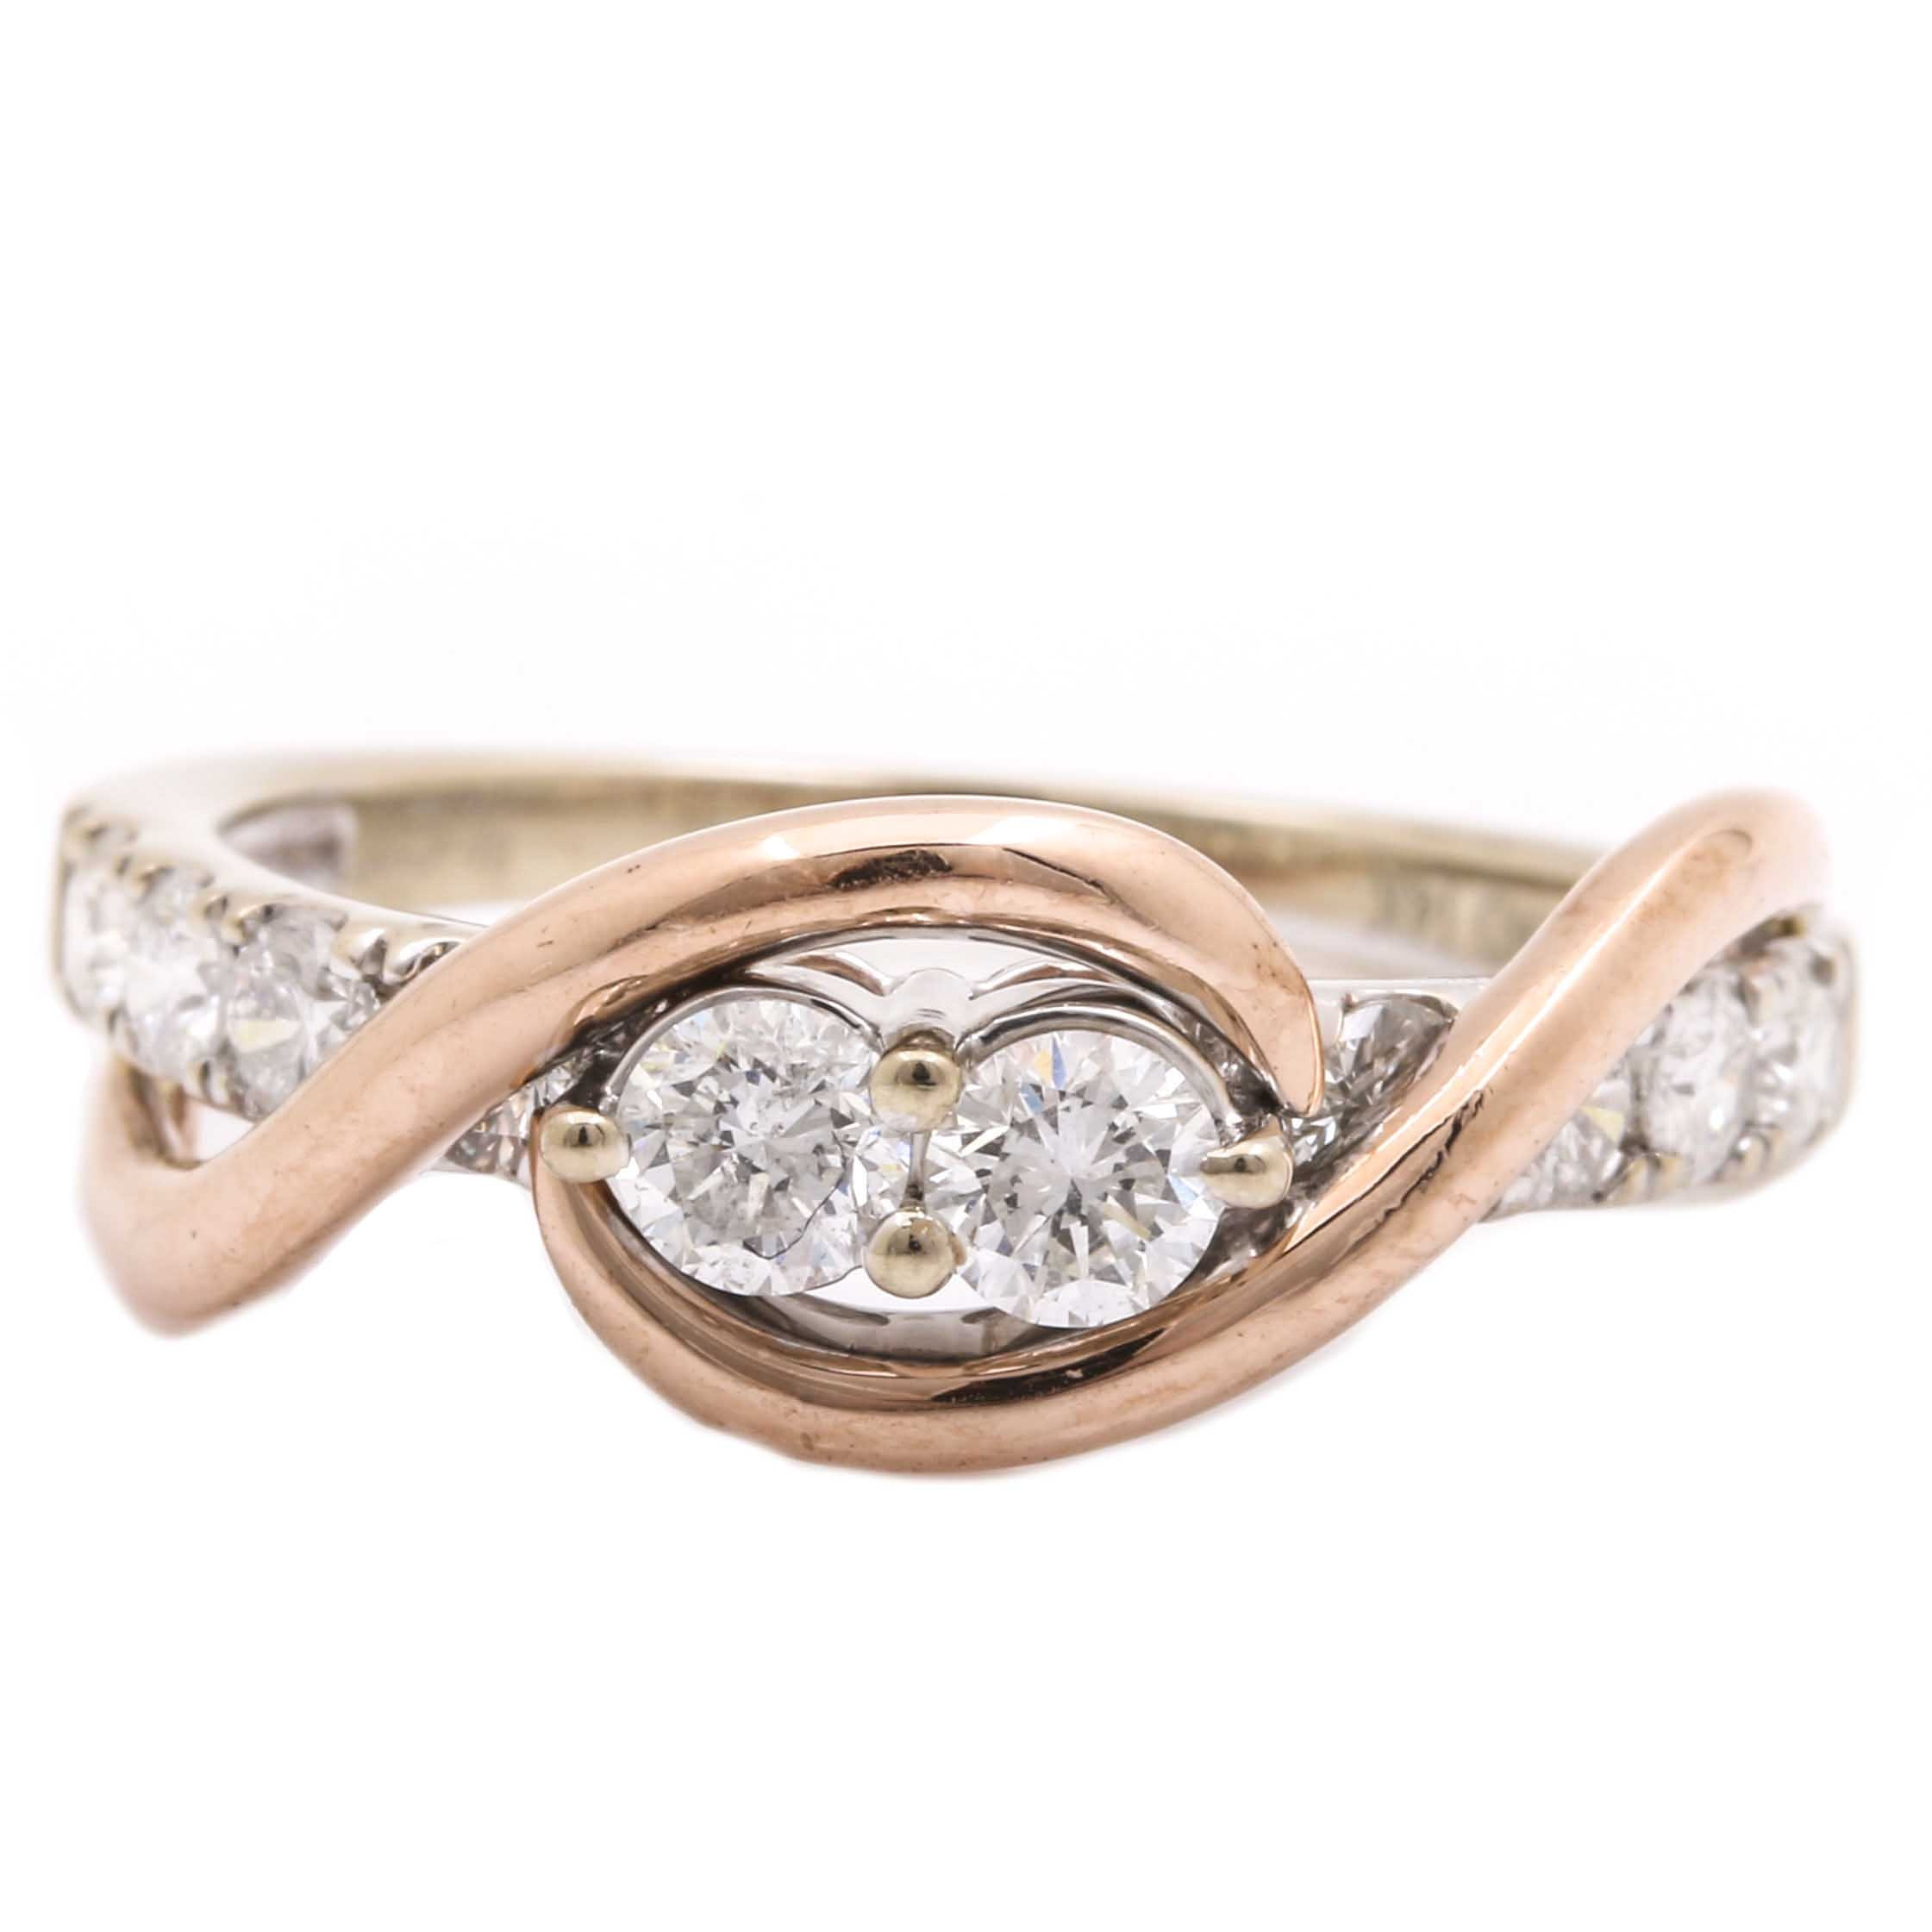 14K Two Tone Gold 0.64 CTW Diamond Ring